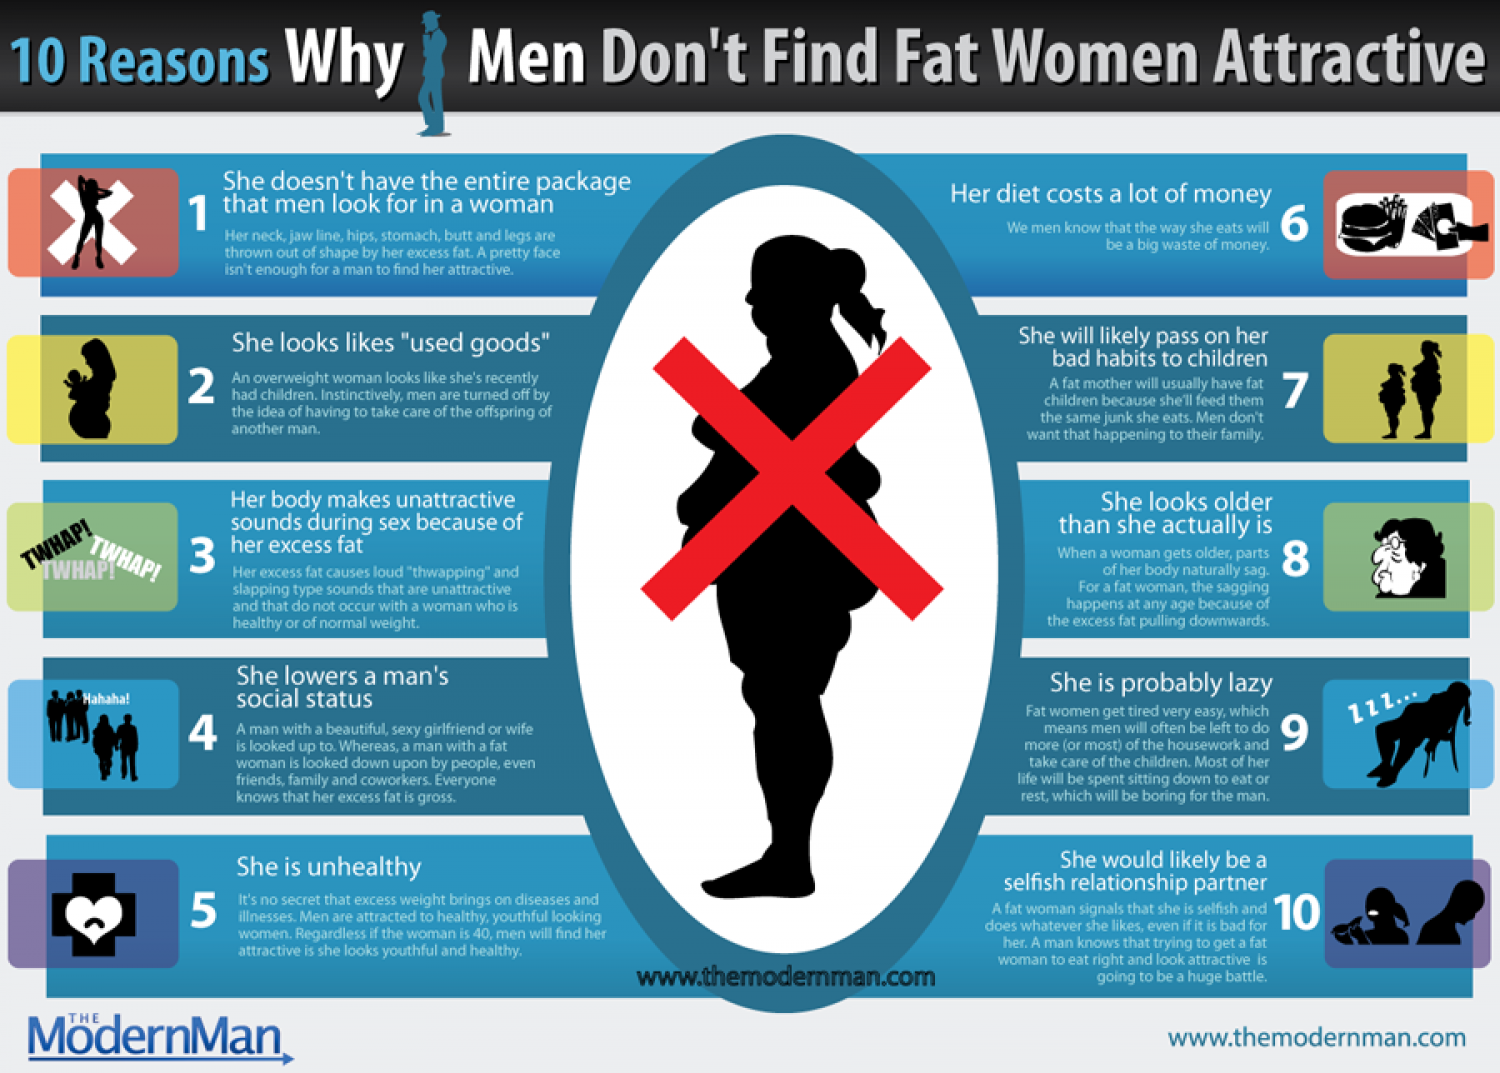 Do men find overweight women attractive